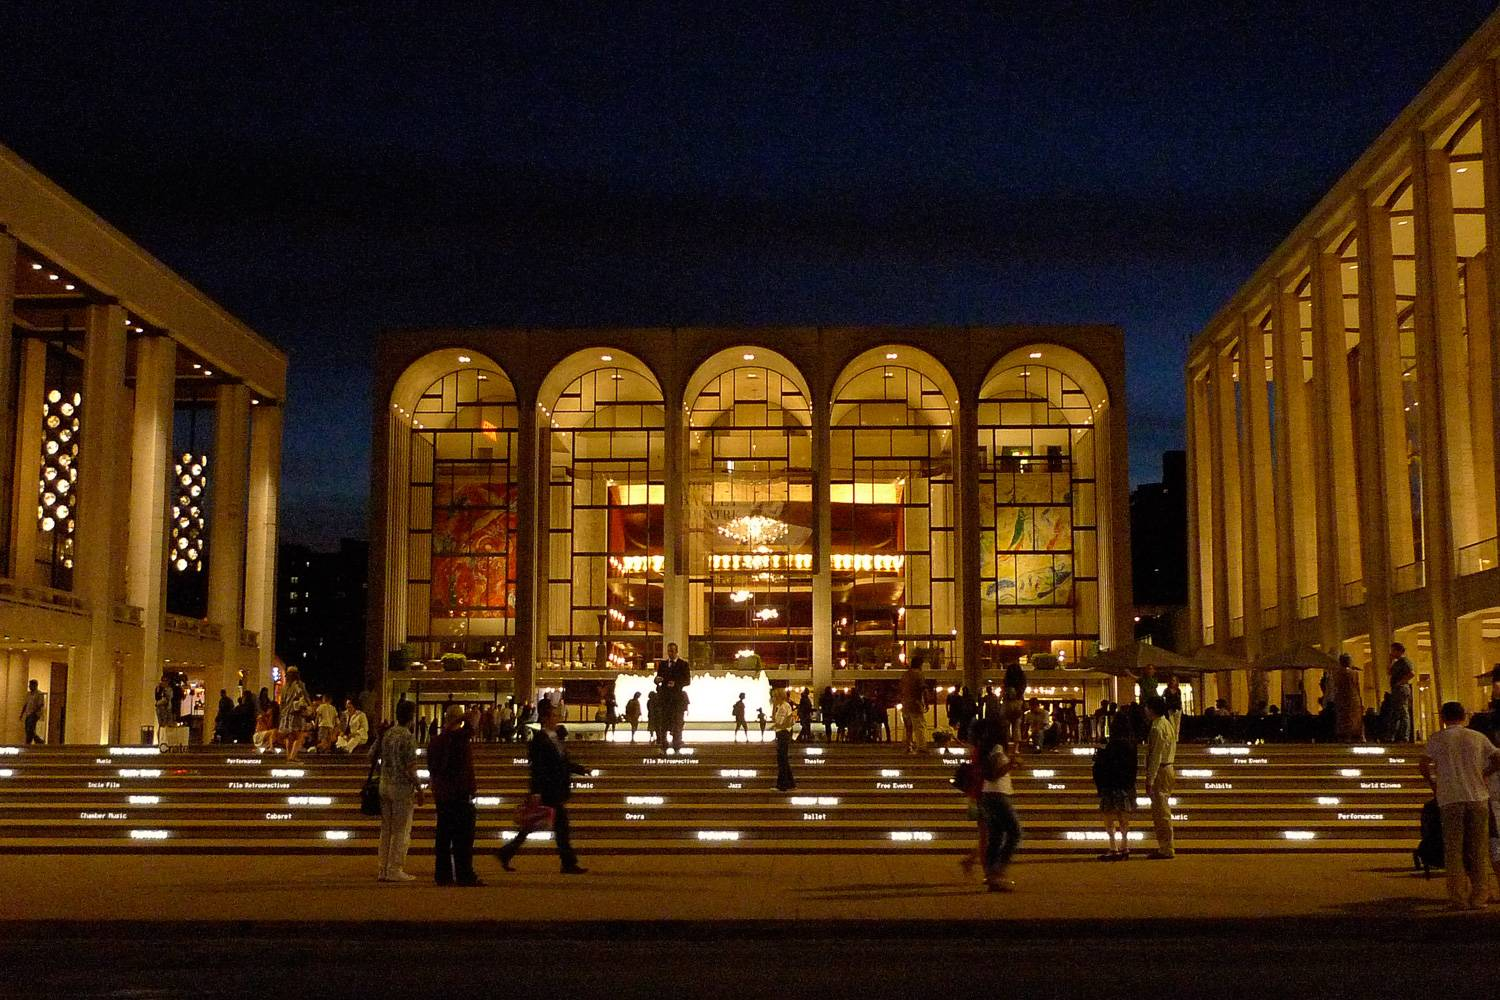 Image of Lincoln Center at night with people walking by.